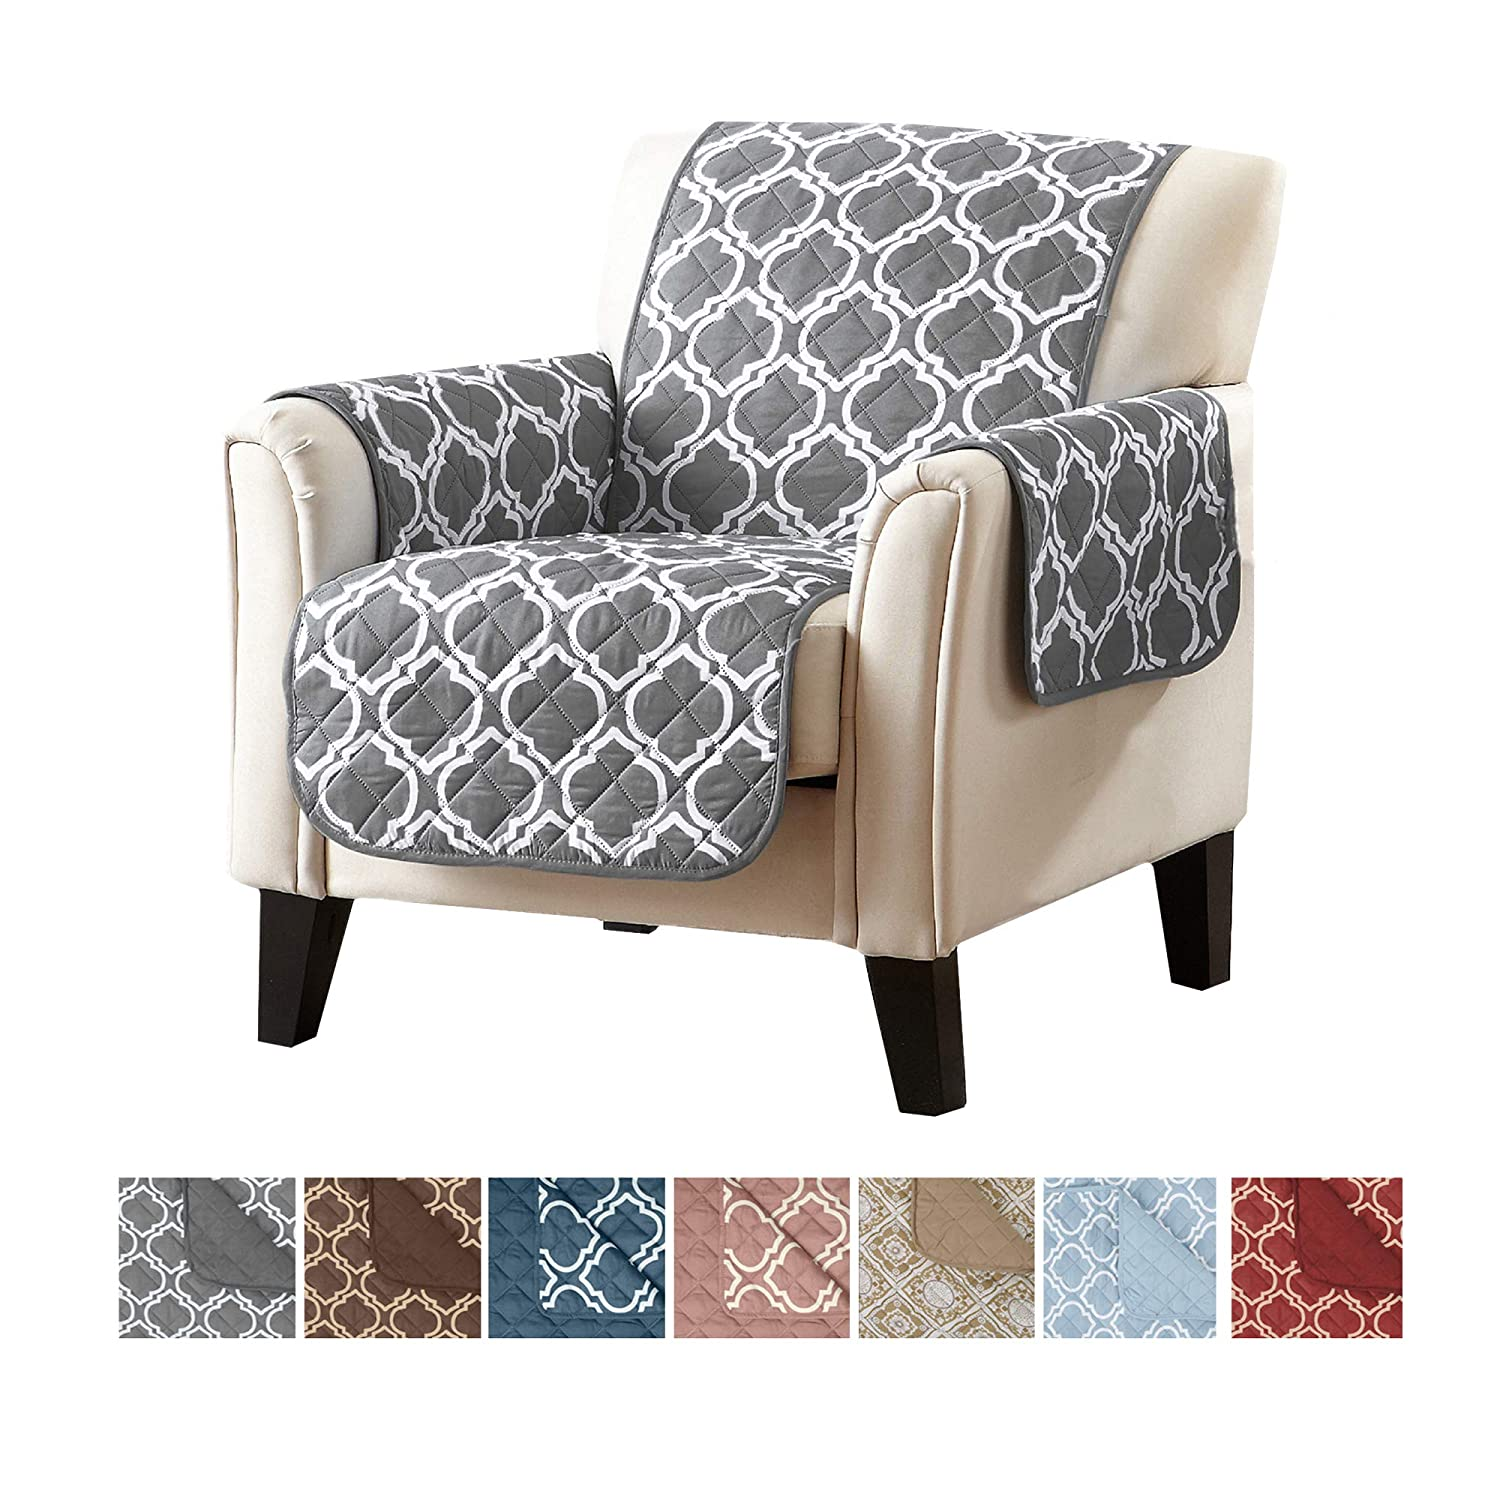 Groovy Home Fashion Designs Reversible Arm Chair Cover For Living Room Oversized Furniture Protector With Secure Straps Chair Cover For Dogs Protect From Alphanode Cool Chair Designs And Ideas Alphanodeonline